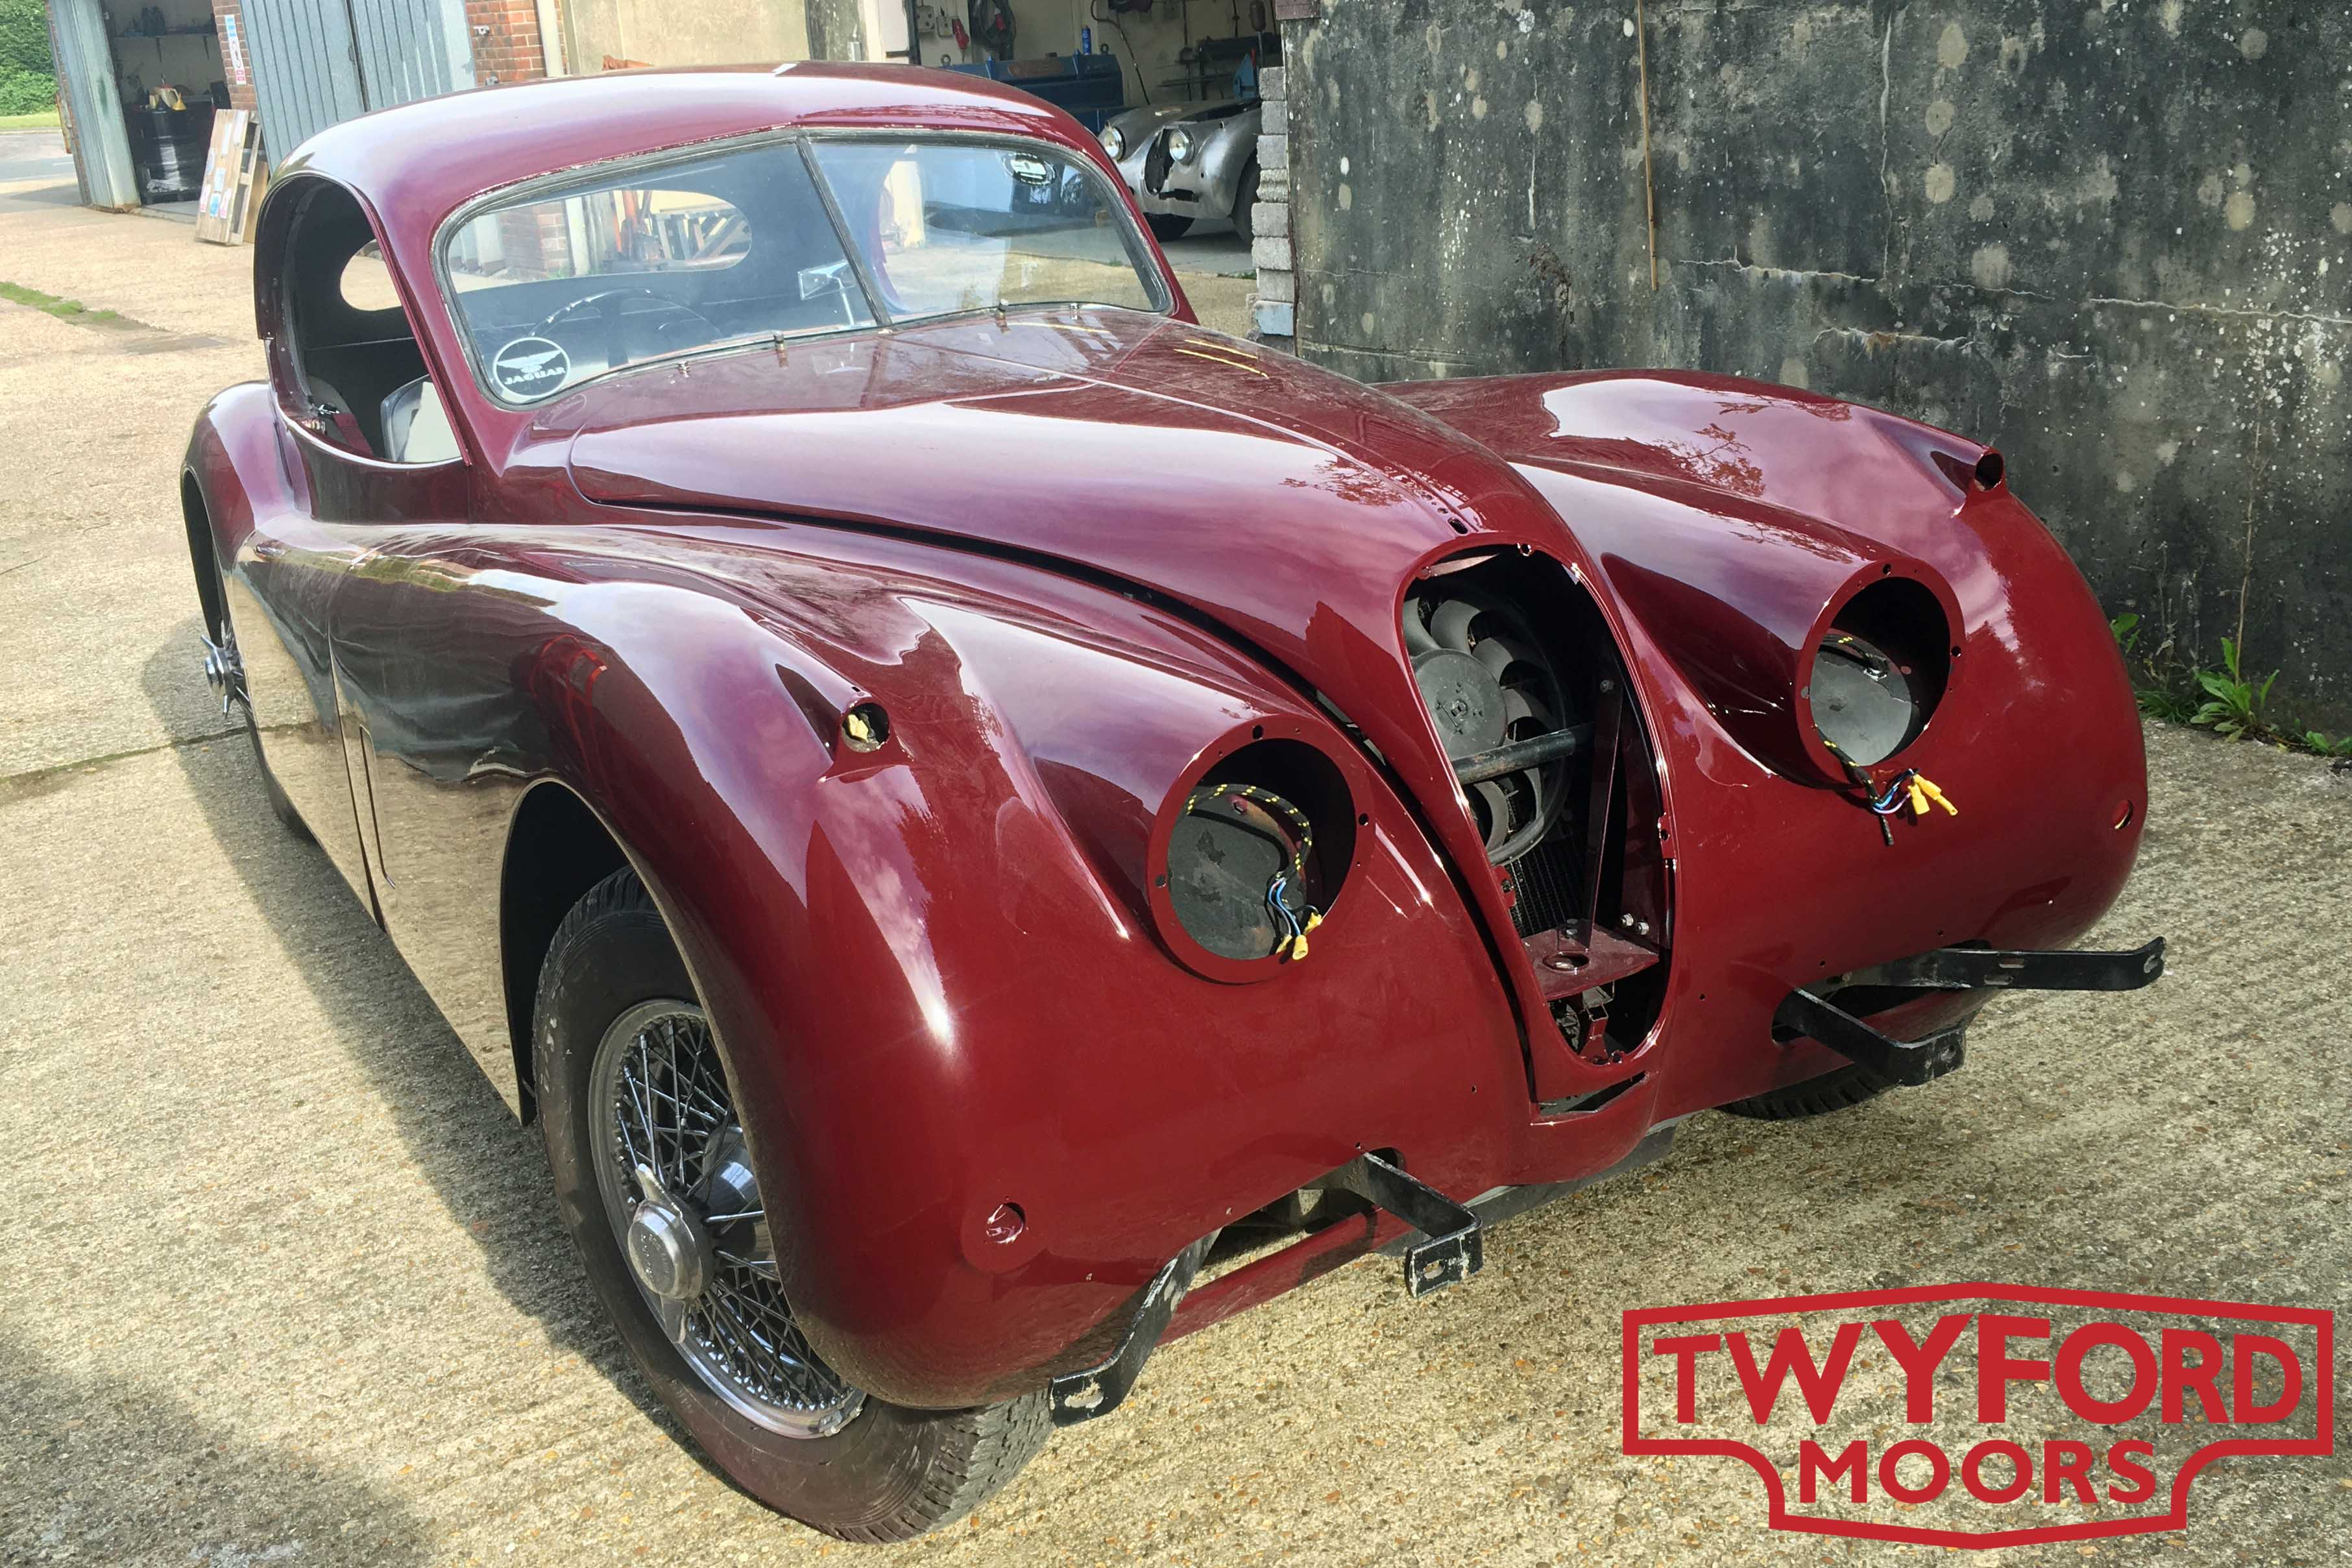 Jaguar XK140 paint and bodywork